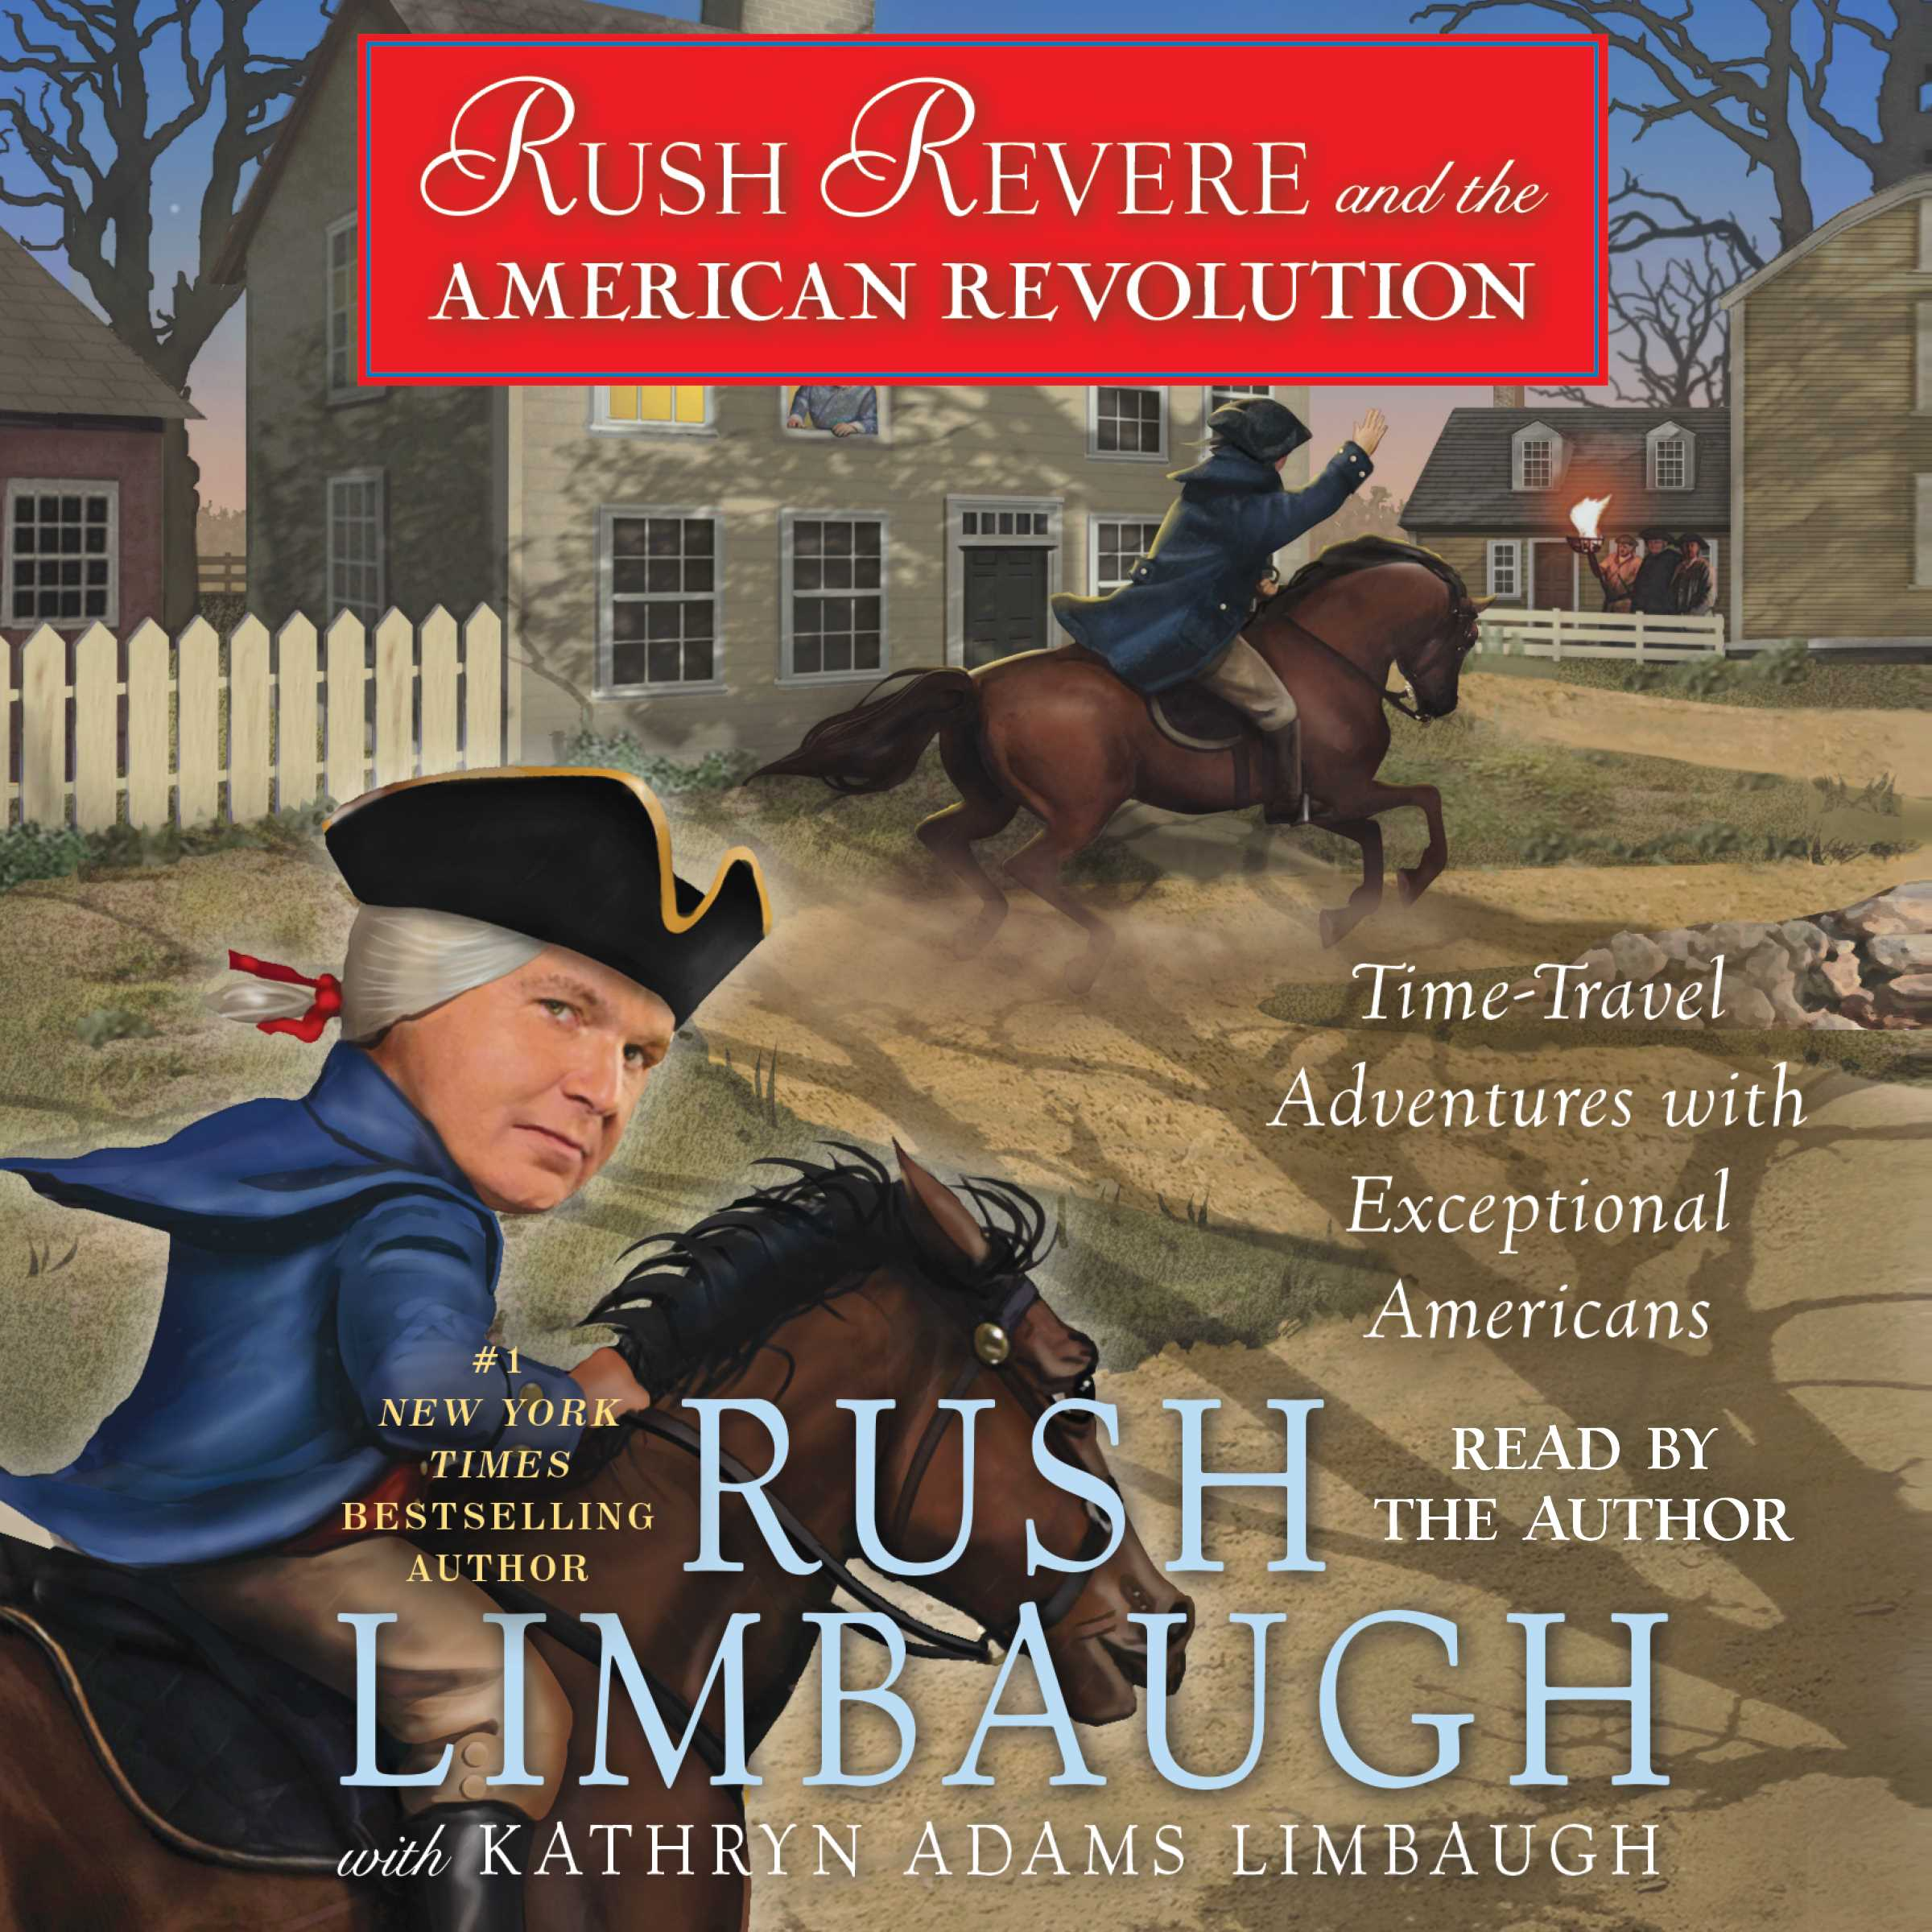 Rush revere and the american revolution 9781442378193 hr